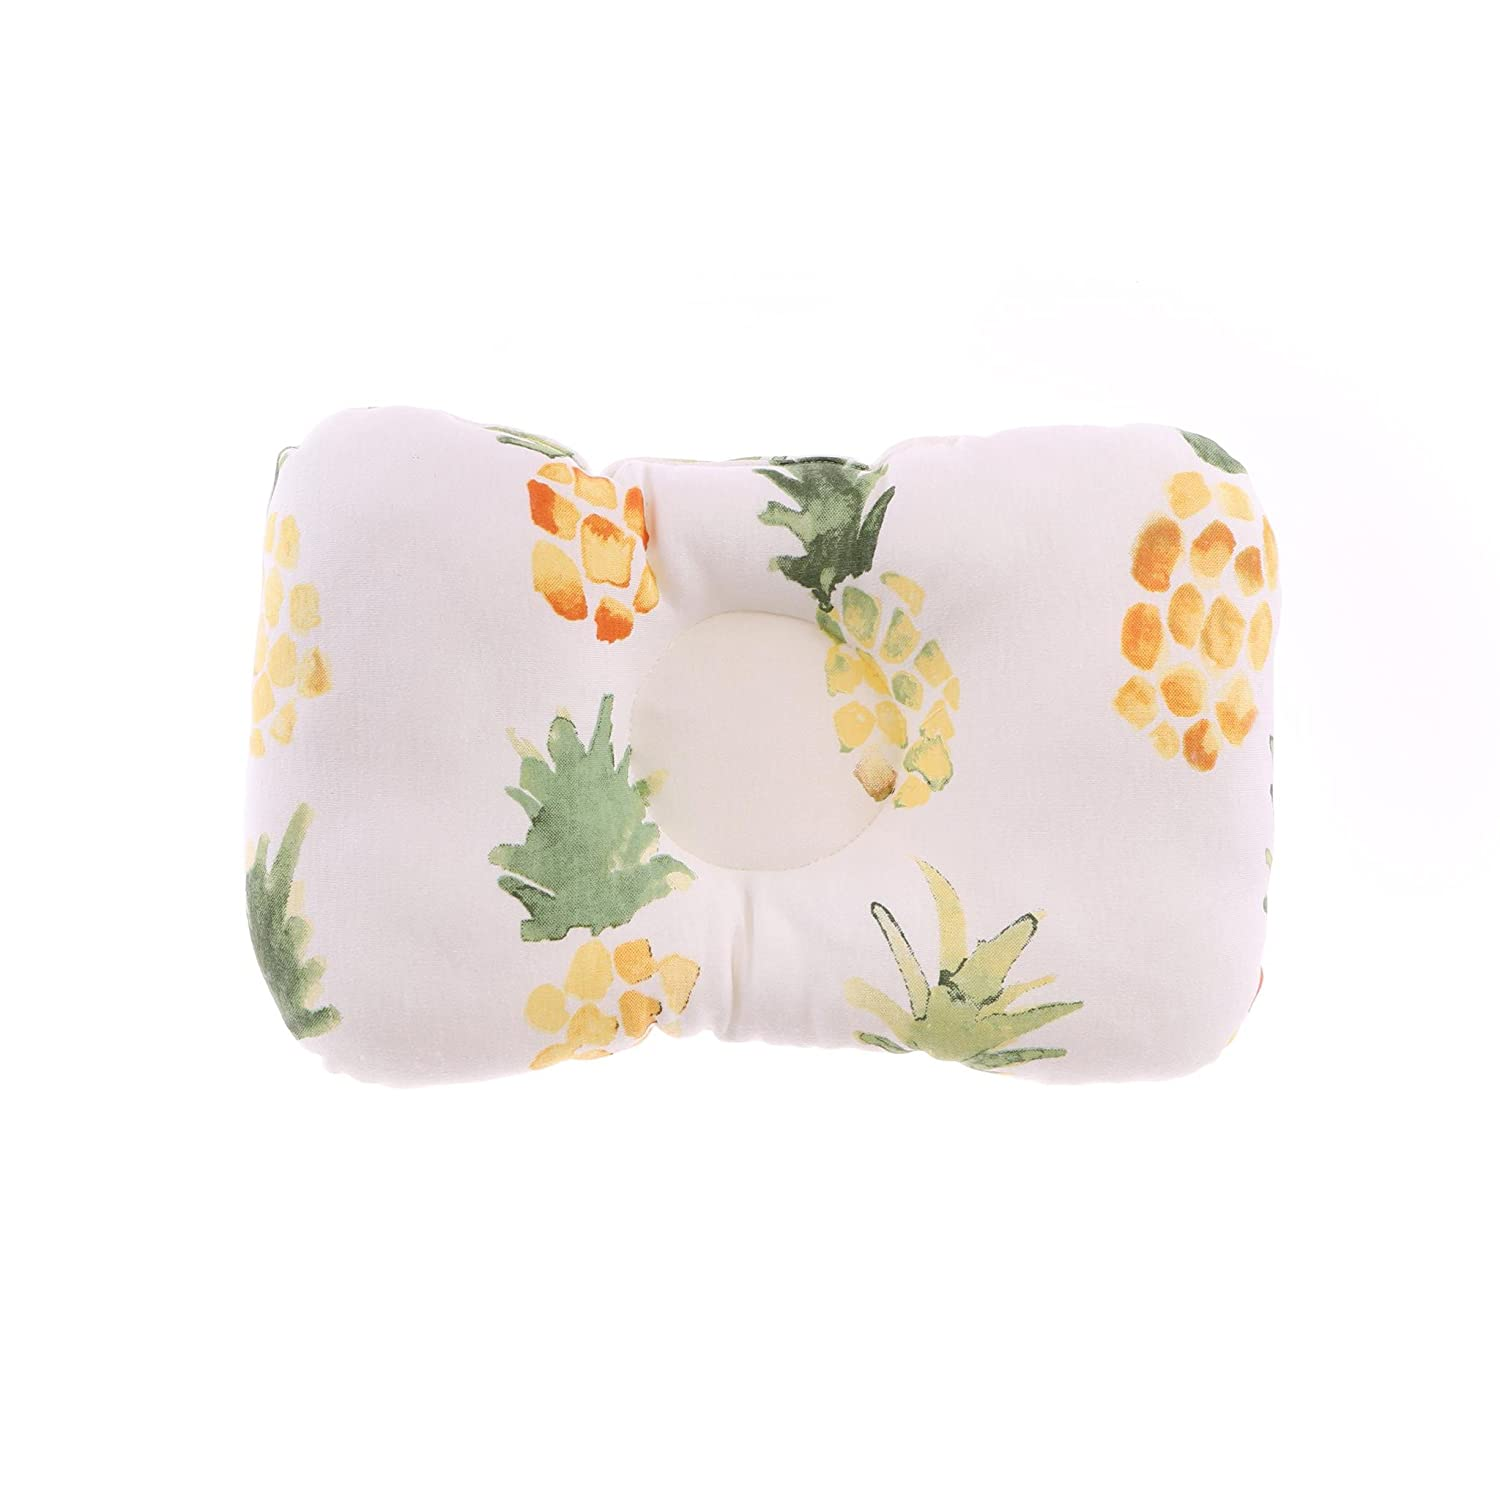 Organic Head Shaping Nursing Baby Pillow for Newborn/Infant, Protection from Flat Head Syndrome, Plagiocephaly (Pineapple)